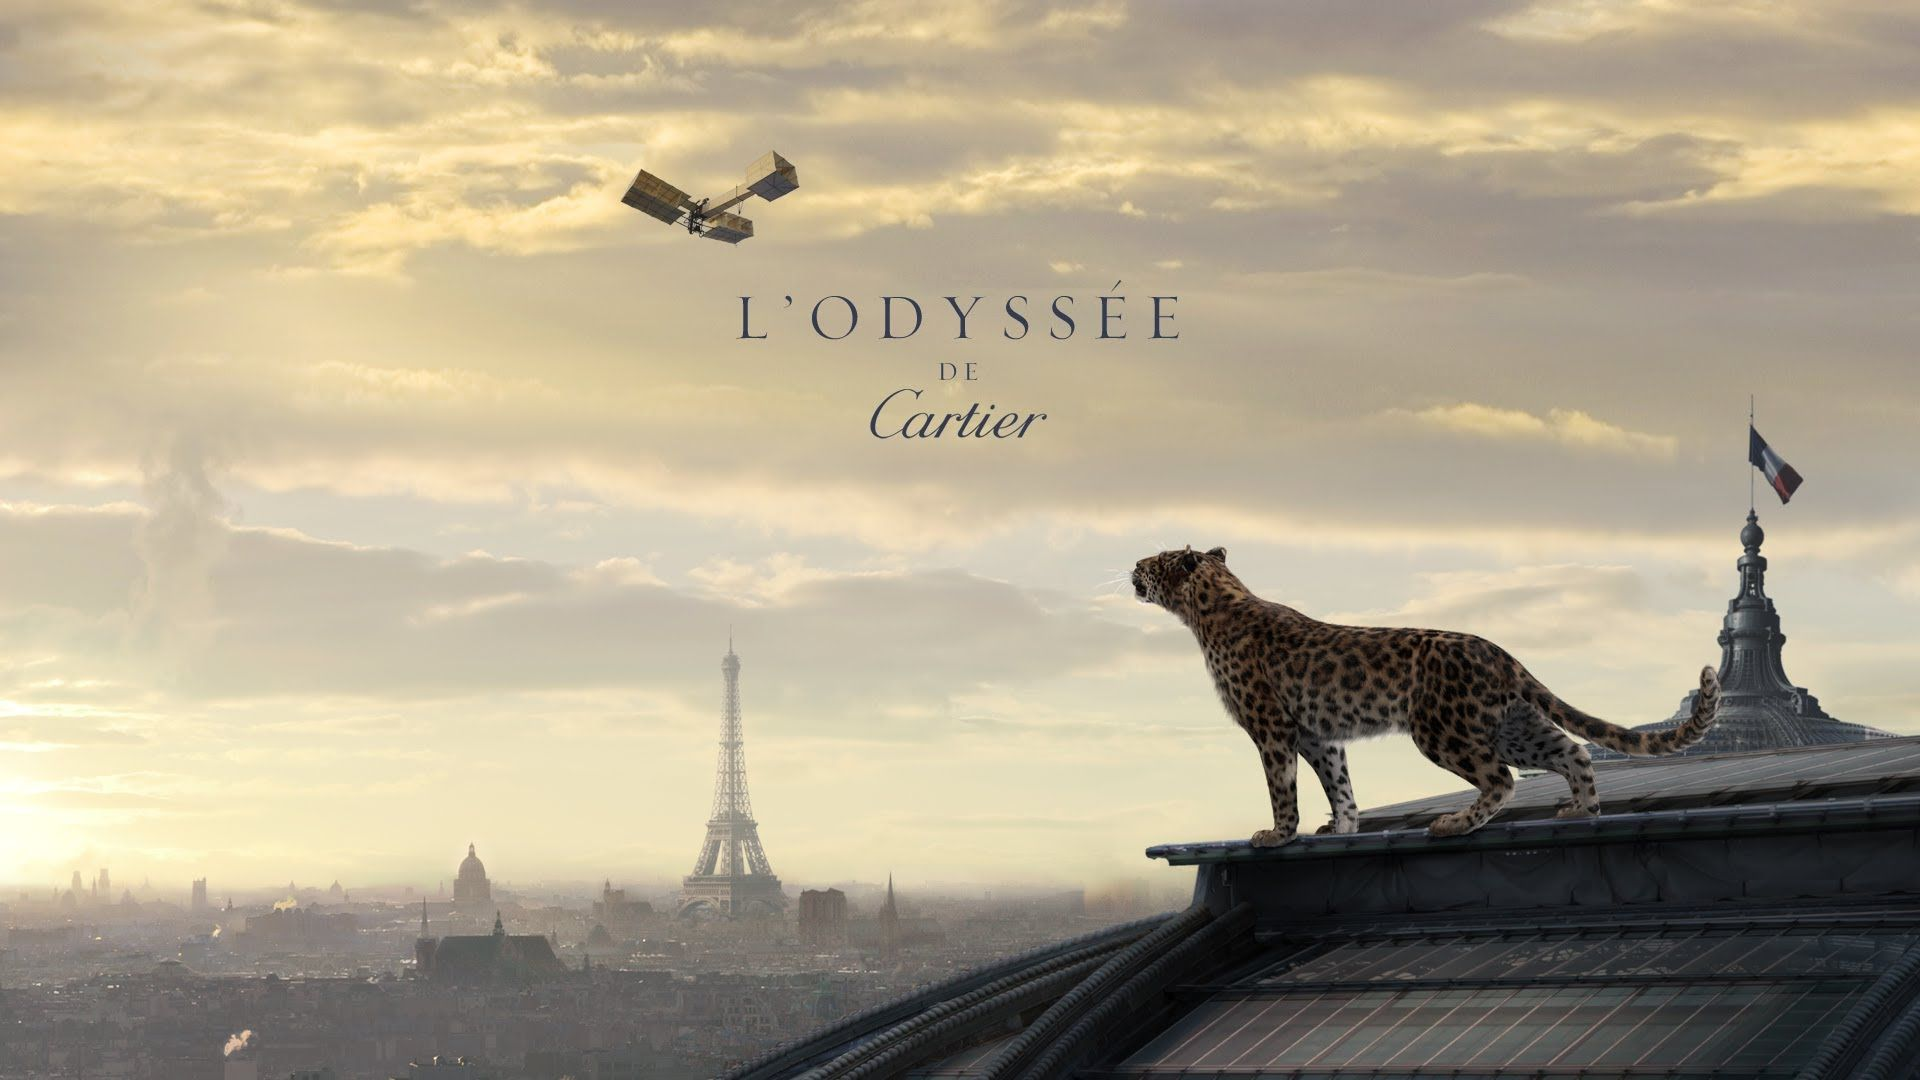 Cartier Odyssee Most Beautiful Jewelry Movie ever Made Bizzita